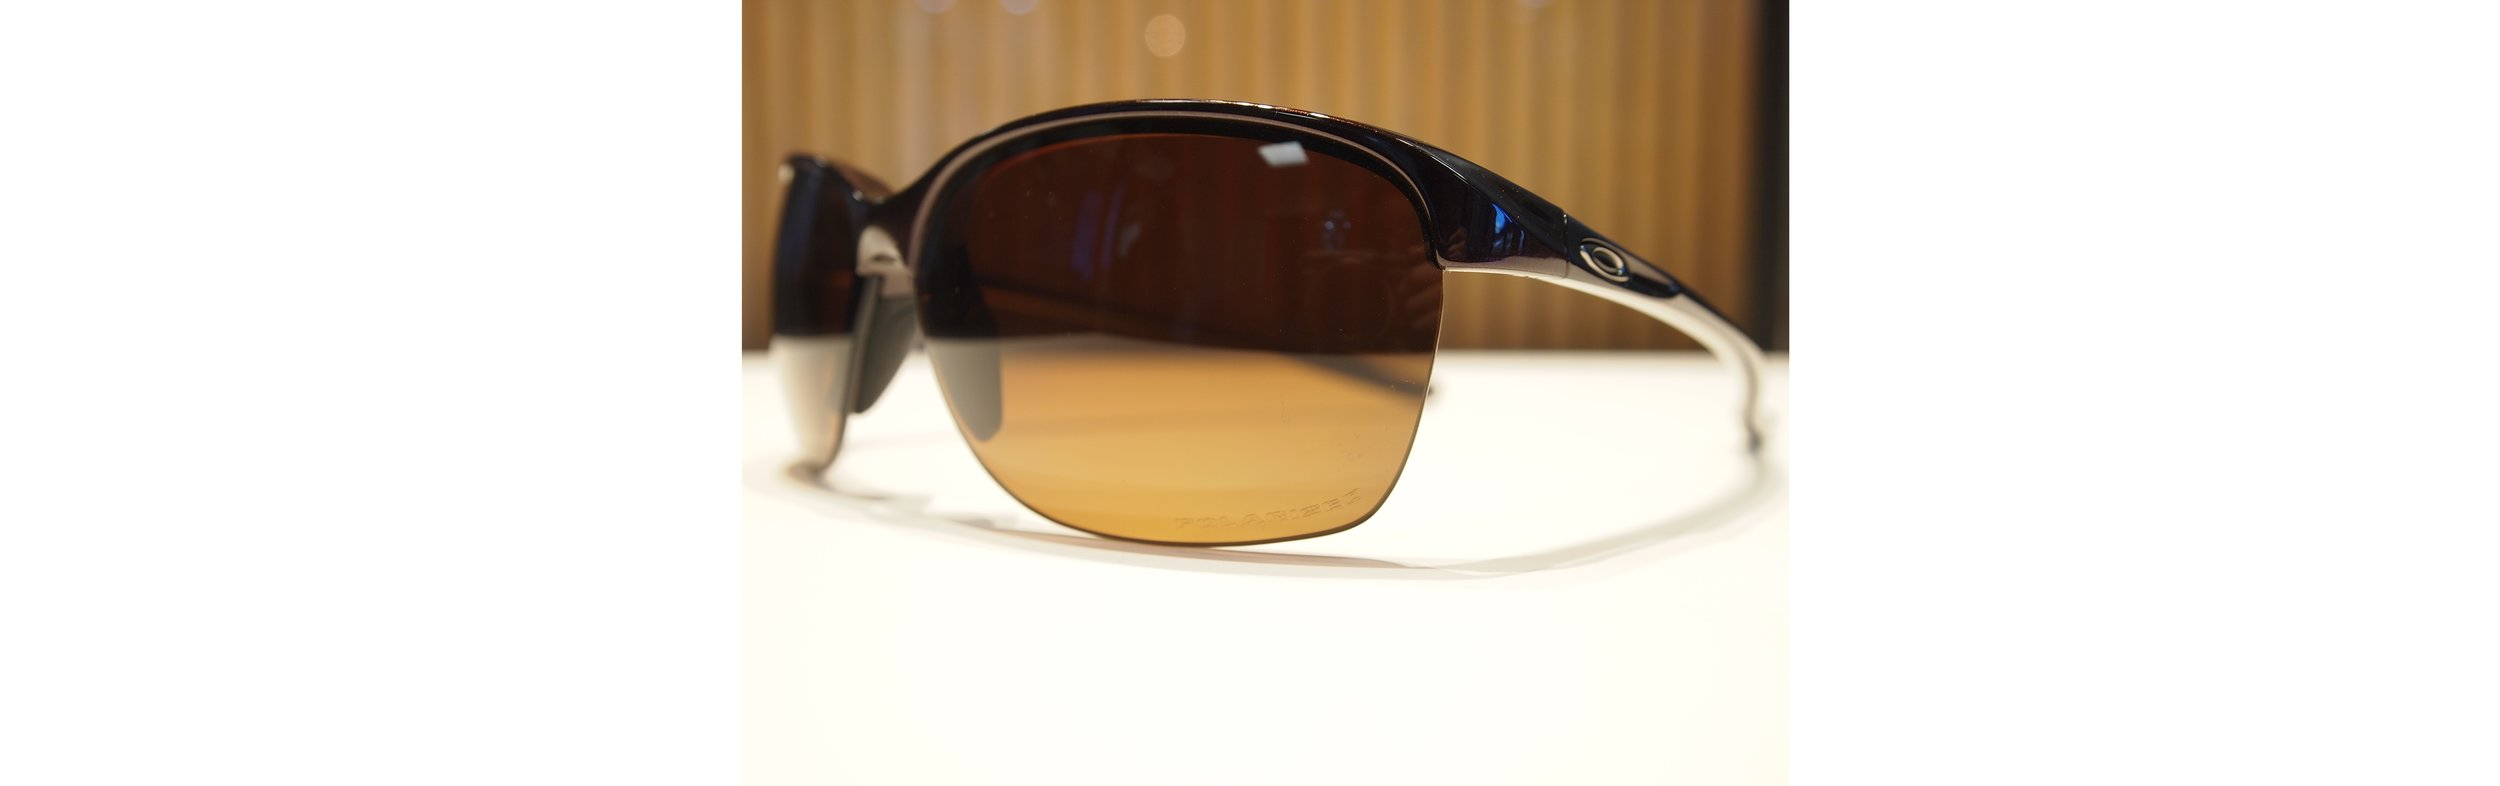 OakleyS 12B - Copy.JPG